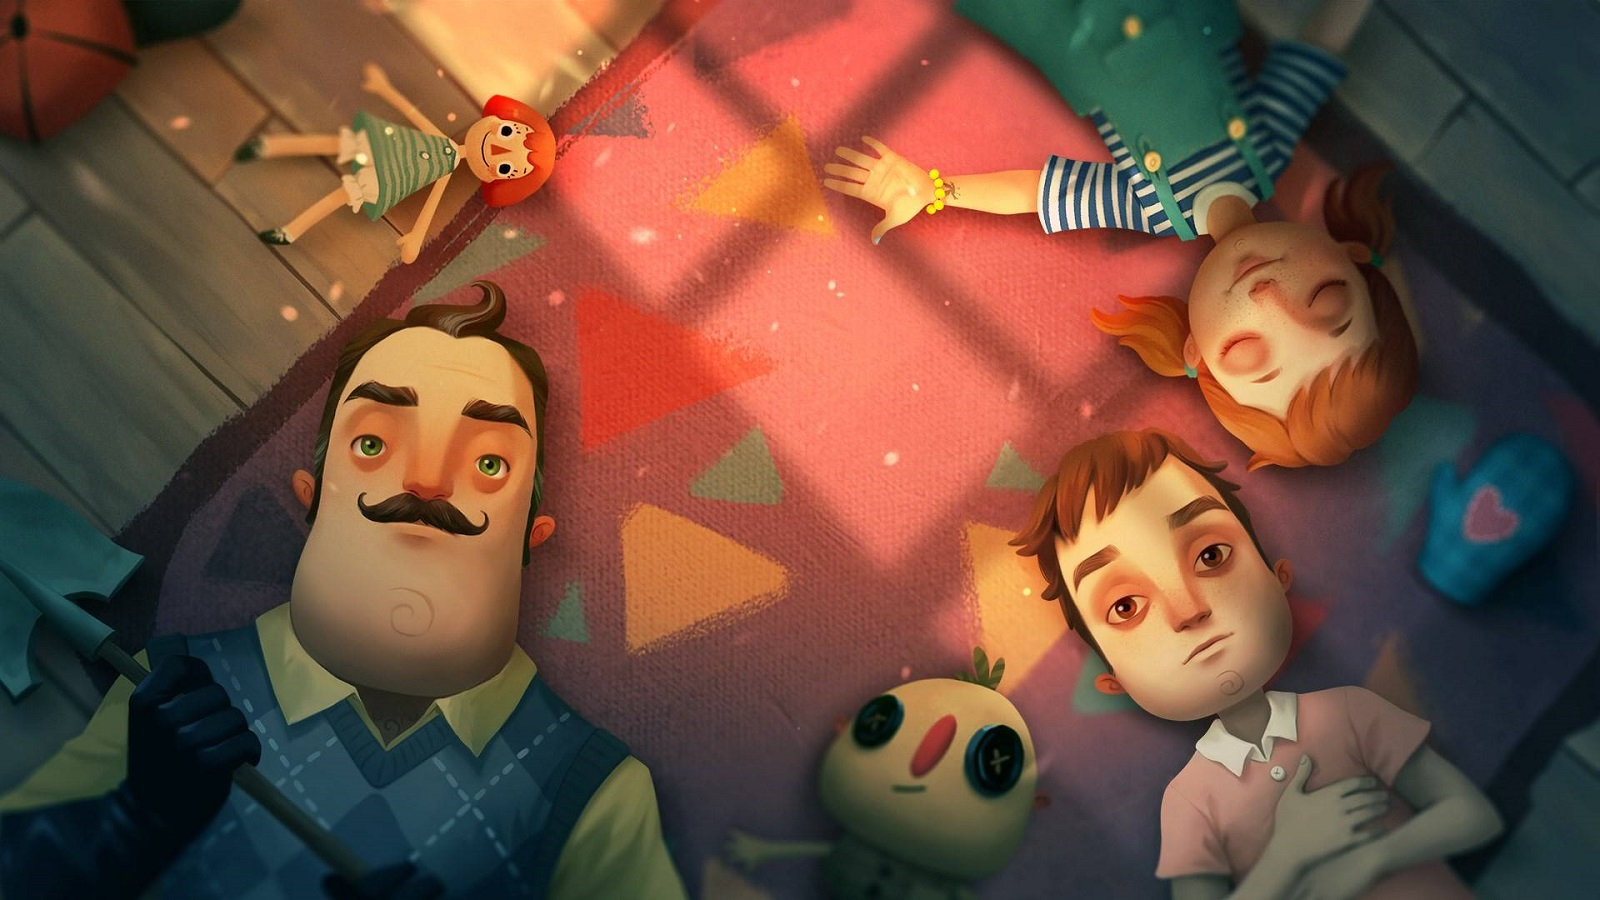 Новый дом для соседа: tinyBuild вложит $15 млн в развитие Hello Neighbor и перевезёт её разработчиков в Нидерланды